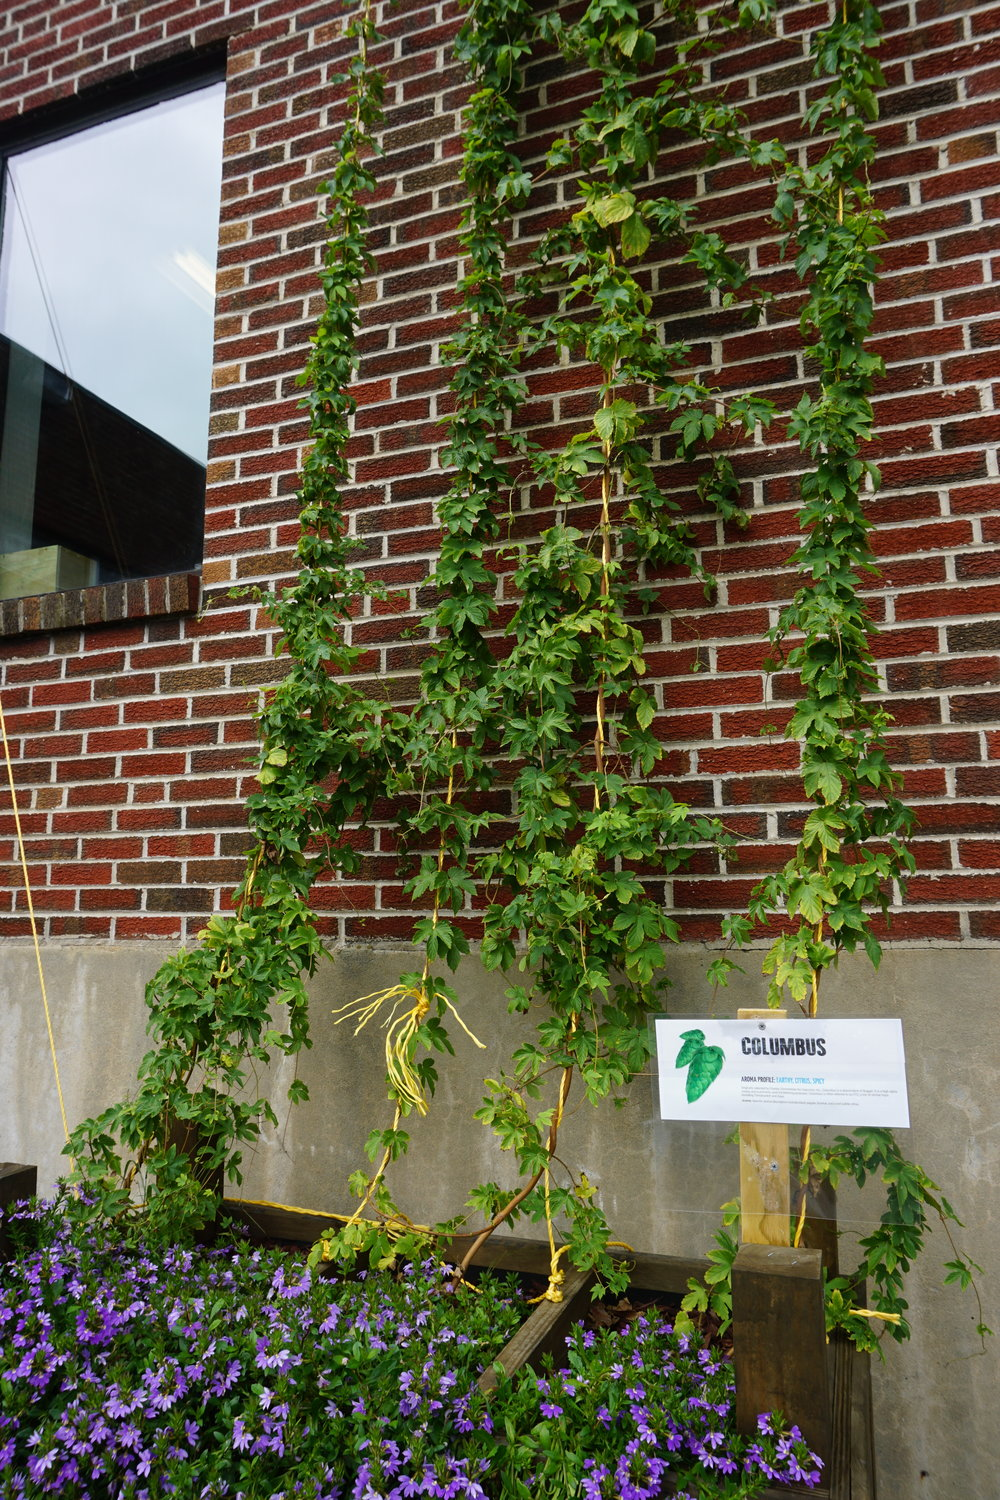 Best kind of flowers and plants for a brewery? Hops, of course!